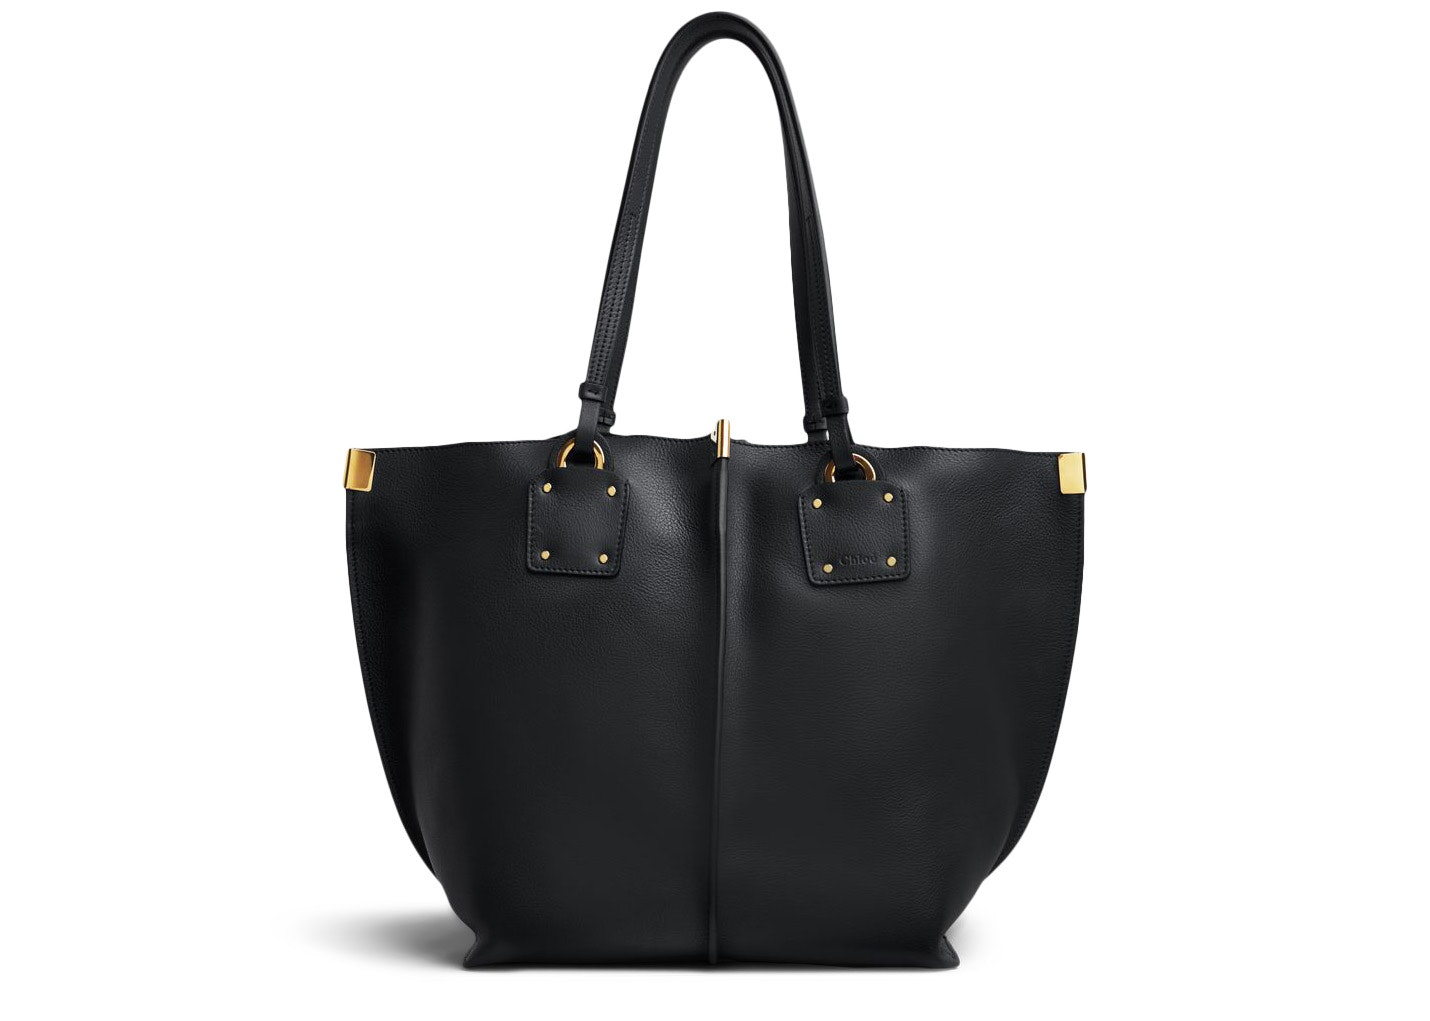 Chloe Vicky Tote Medium Black